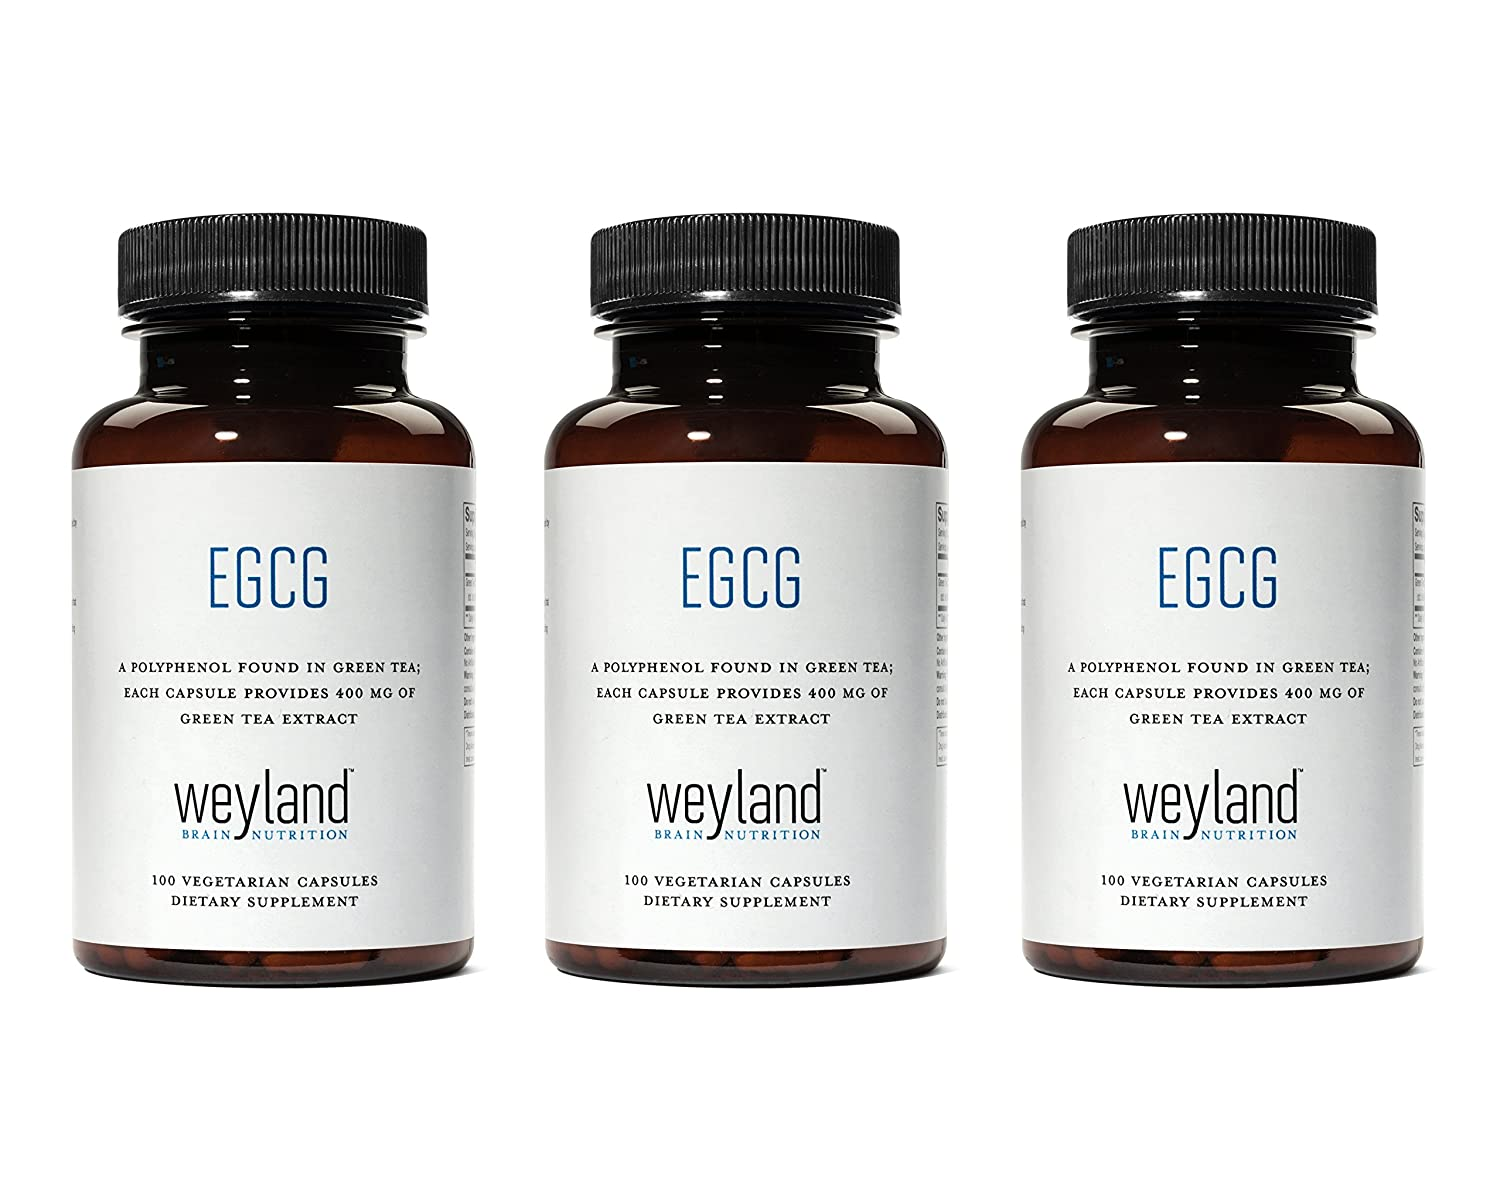 Weyland EGCG from Green Tea Extract 3 Bottles